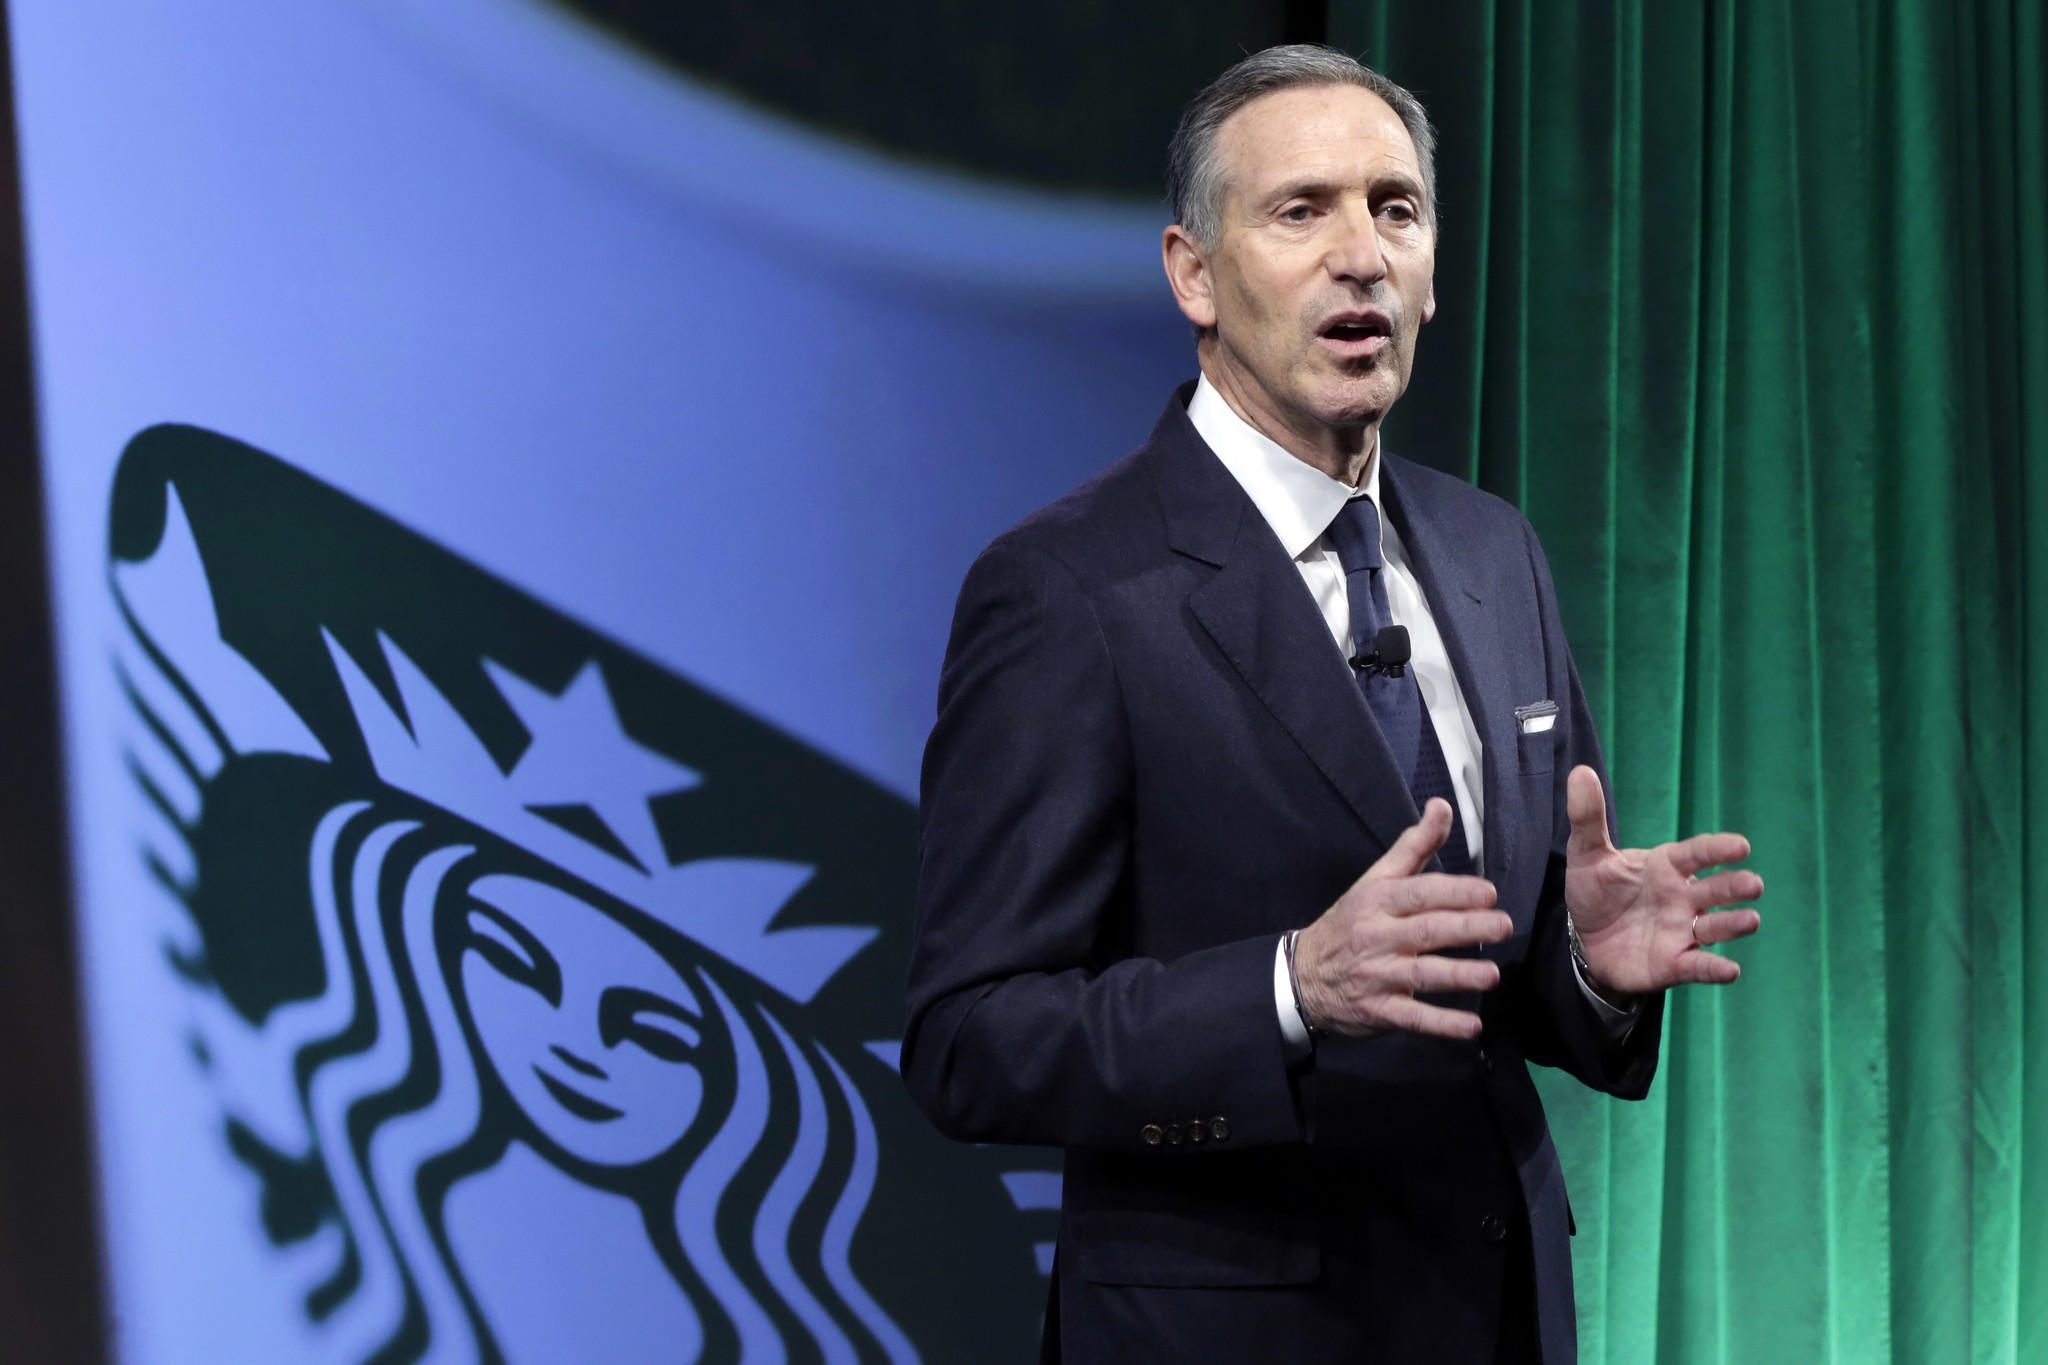 Starbucks Chief Executive Howard Schultz said the Seattle coffee company is developing plans to hire 10,000 refugees over the next five years. (Richard Drew / Associated Press)